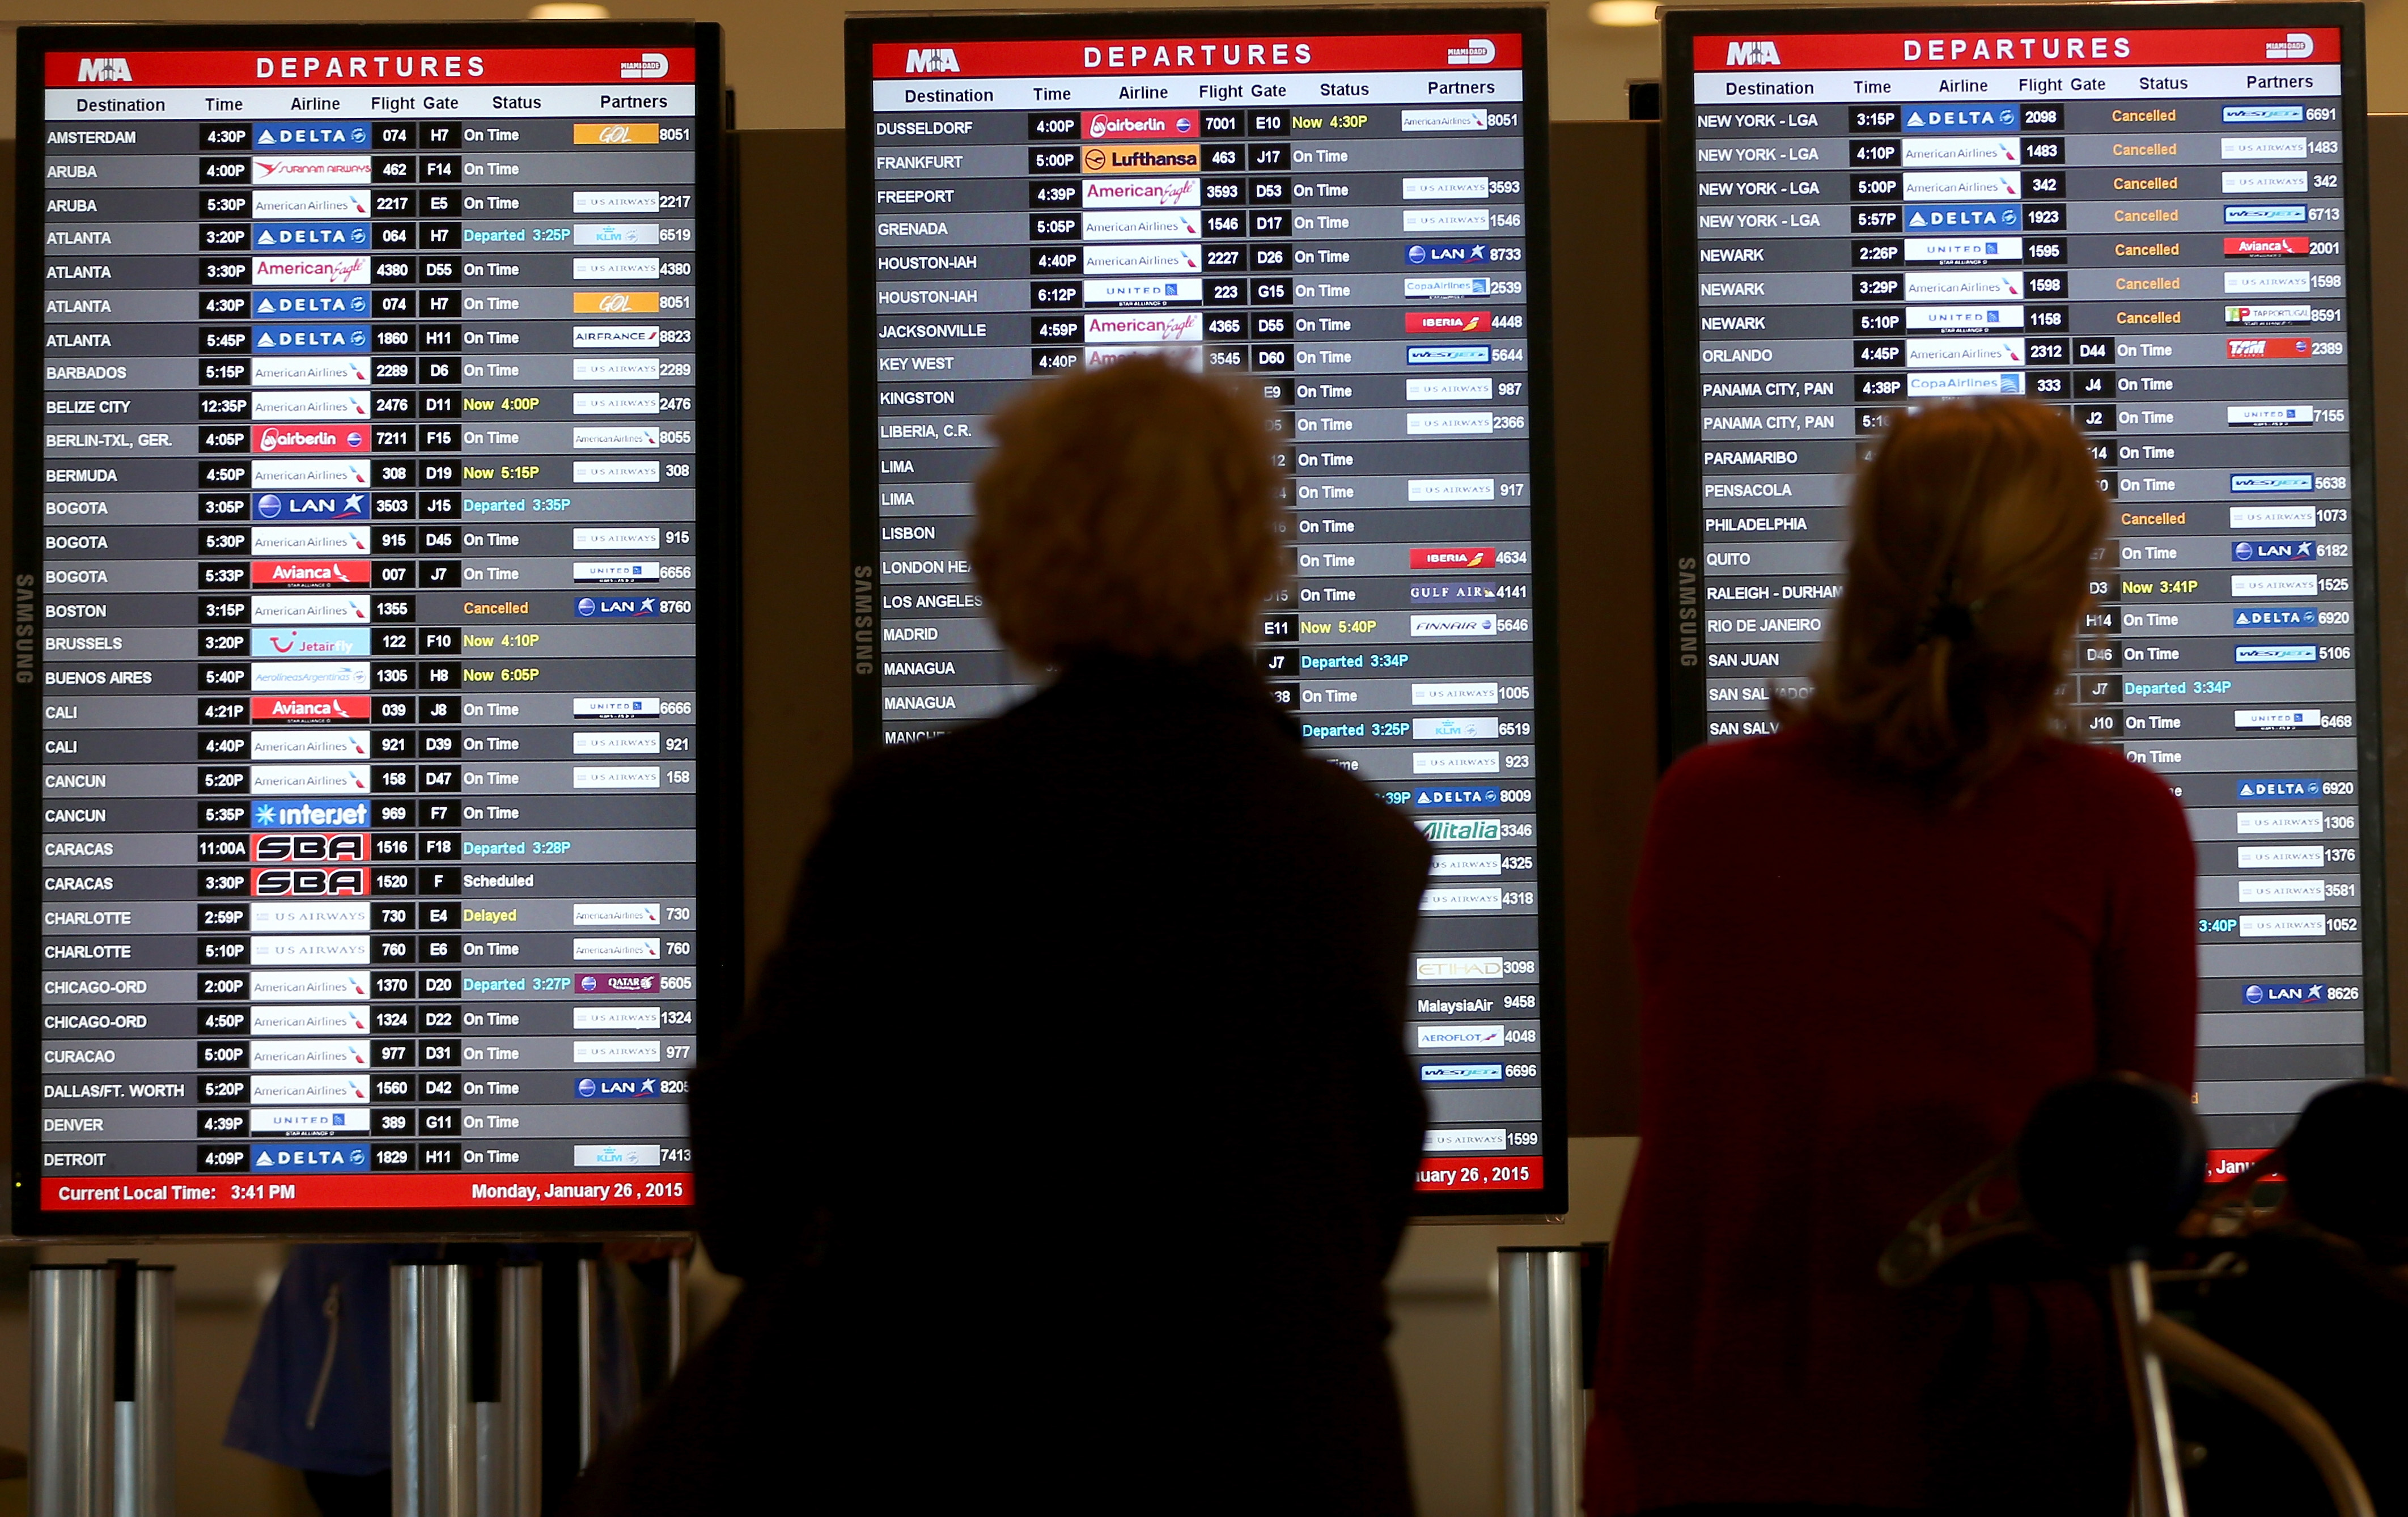 In this file photo, passengers look at a departure board at Miami International Airport. Airlines began expanding their Hurricane Irma change-fee waivers to include Florida airports as the storm appeared increasingly likely to track toward the state.